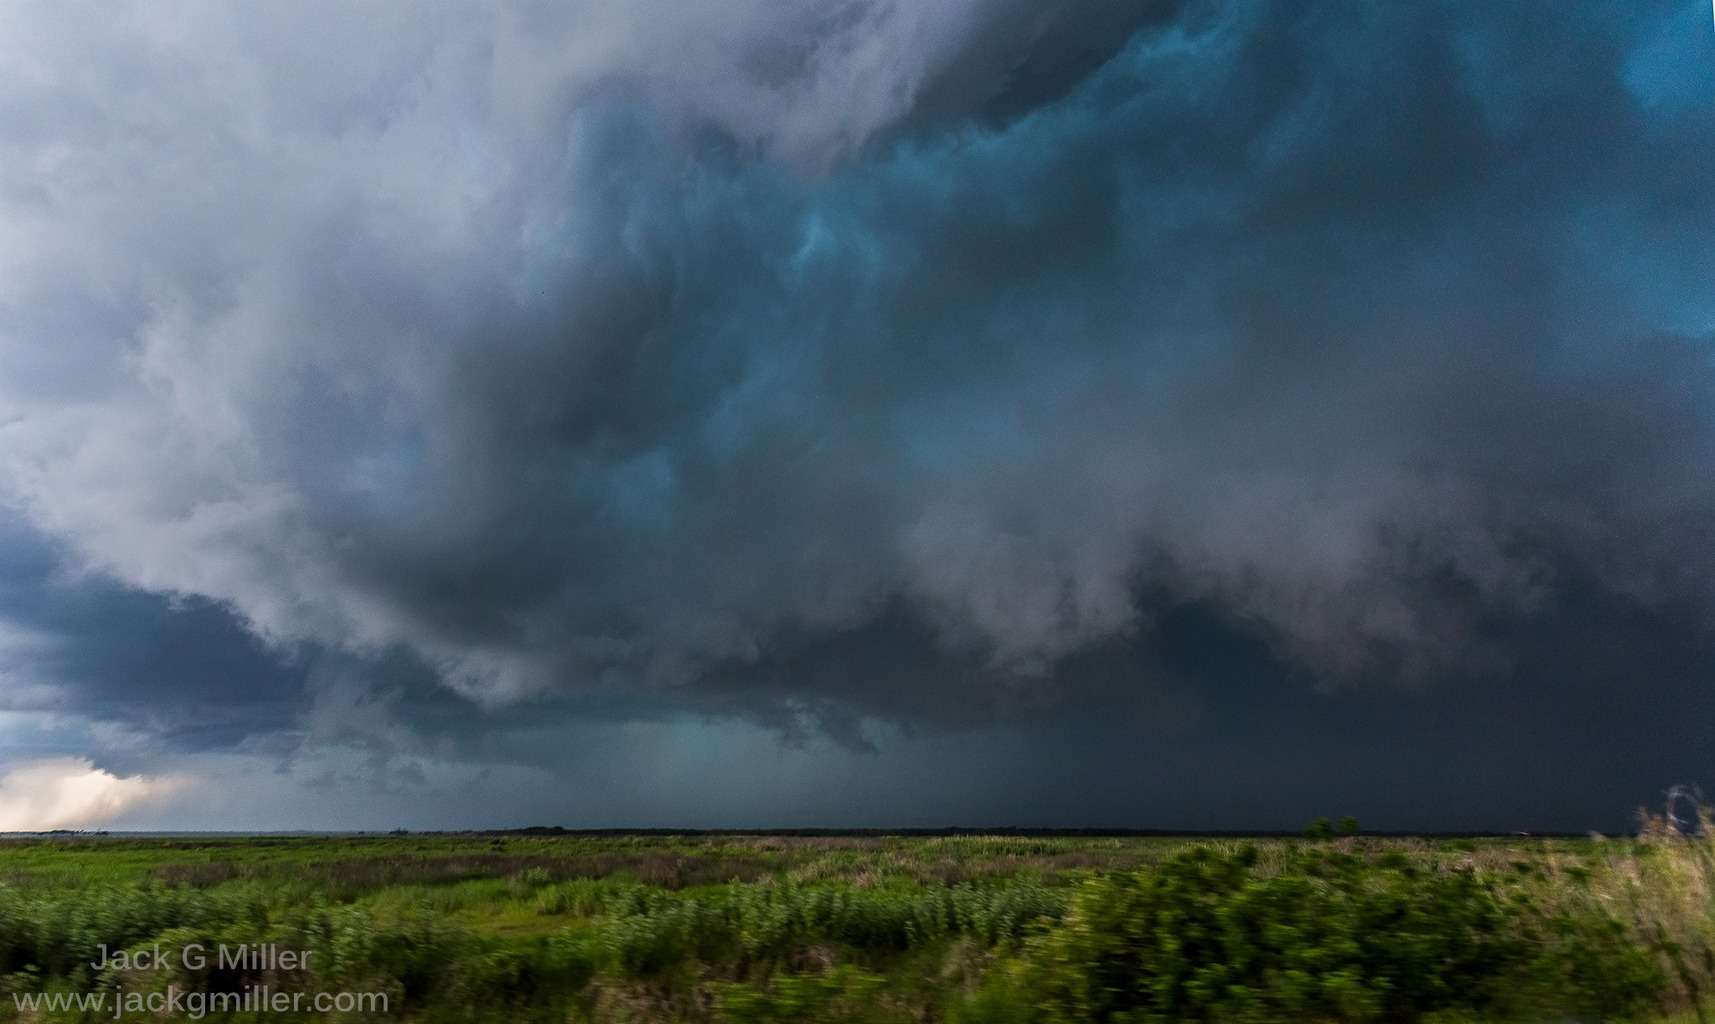 SVR warned hail producing storm over Oviedo, Fl today.